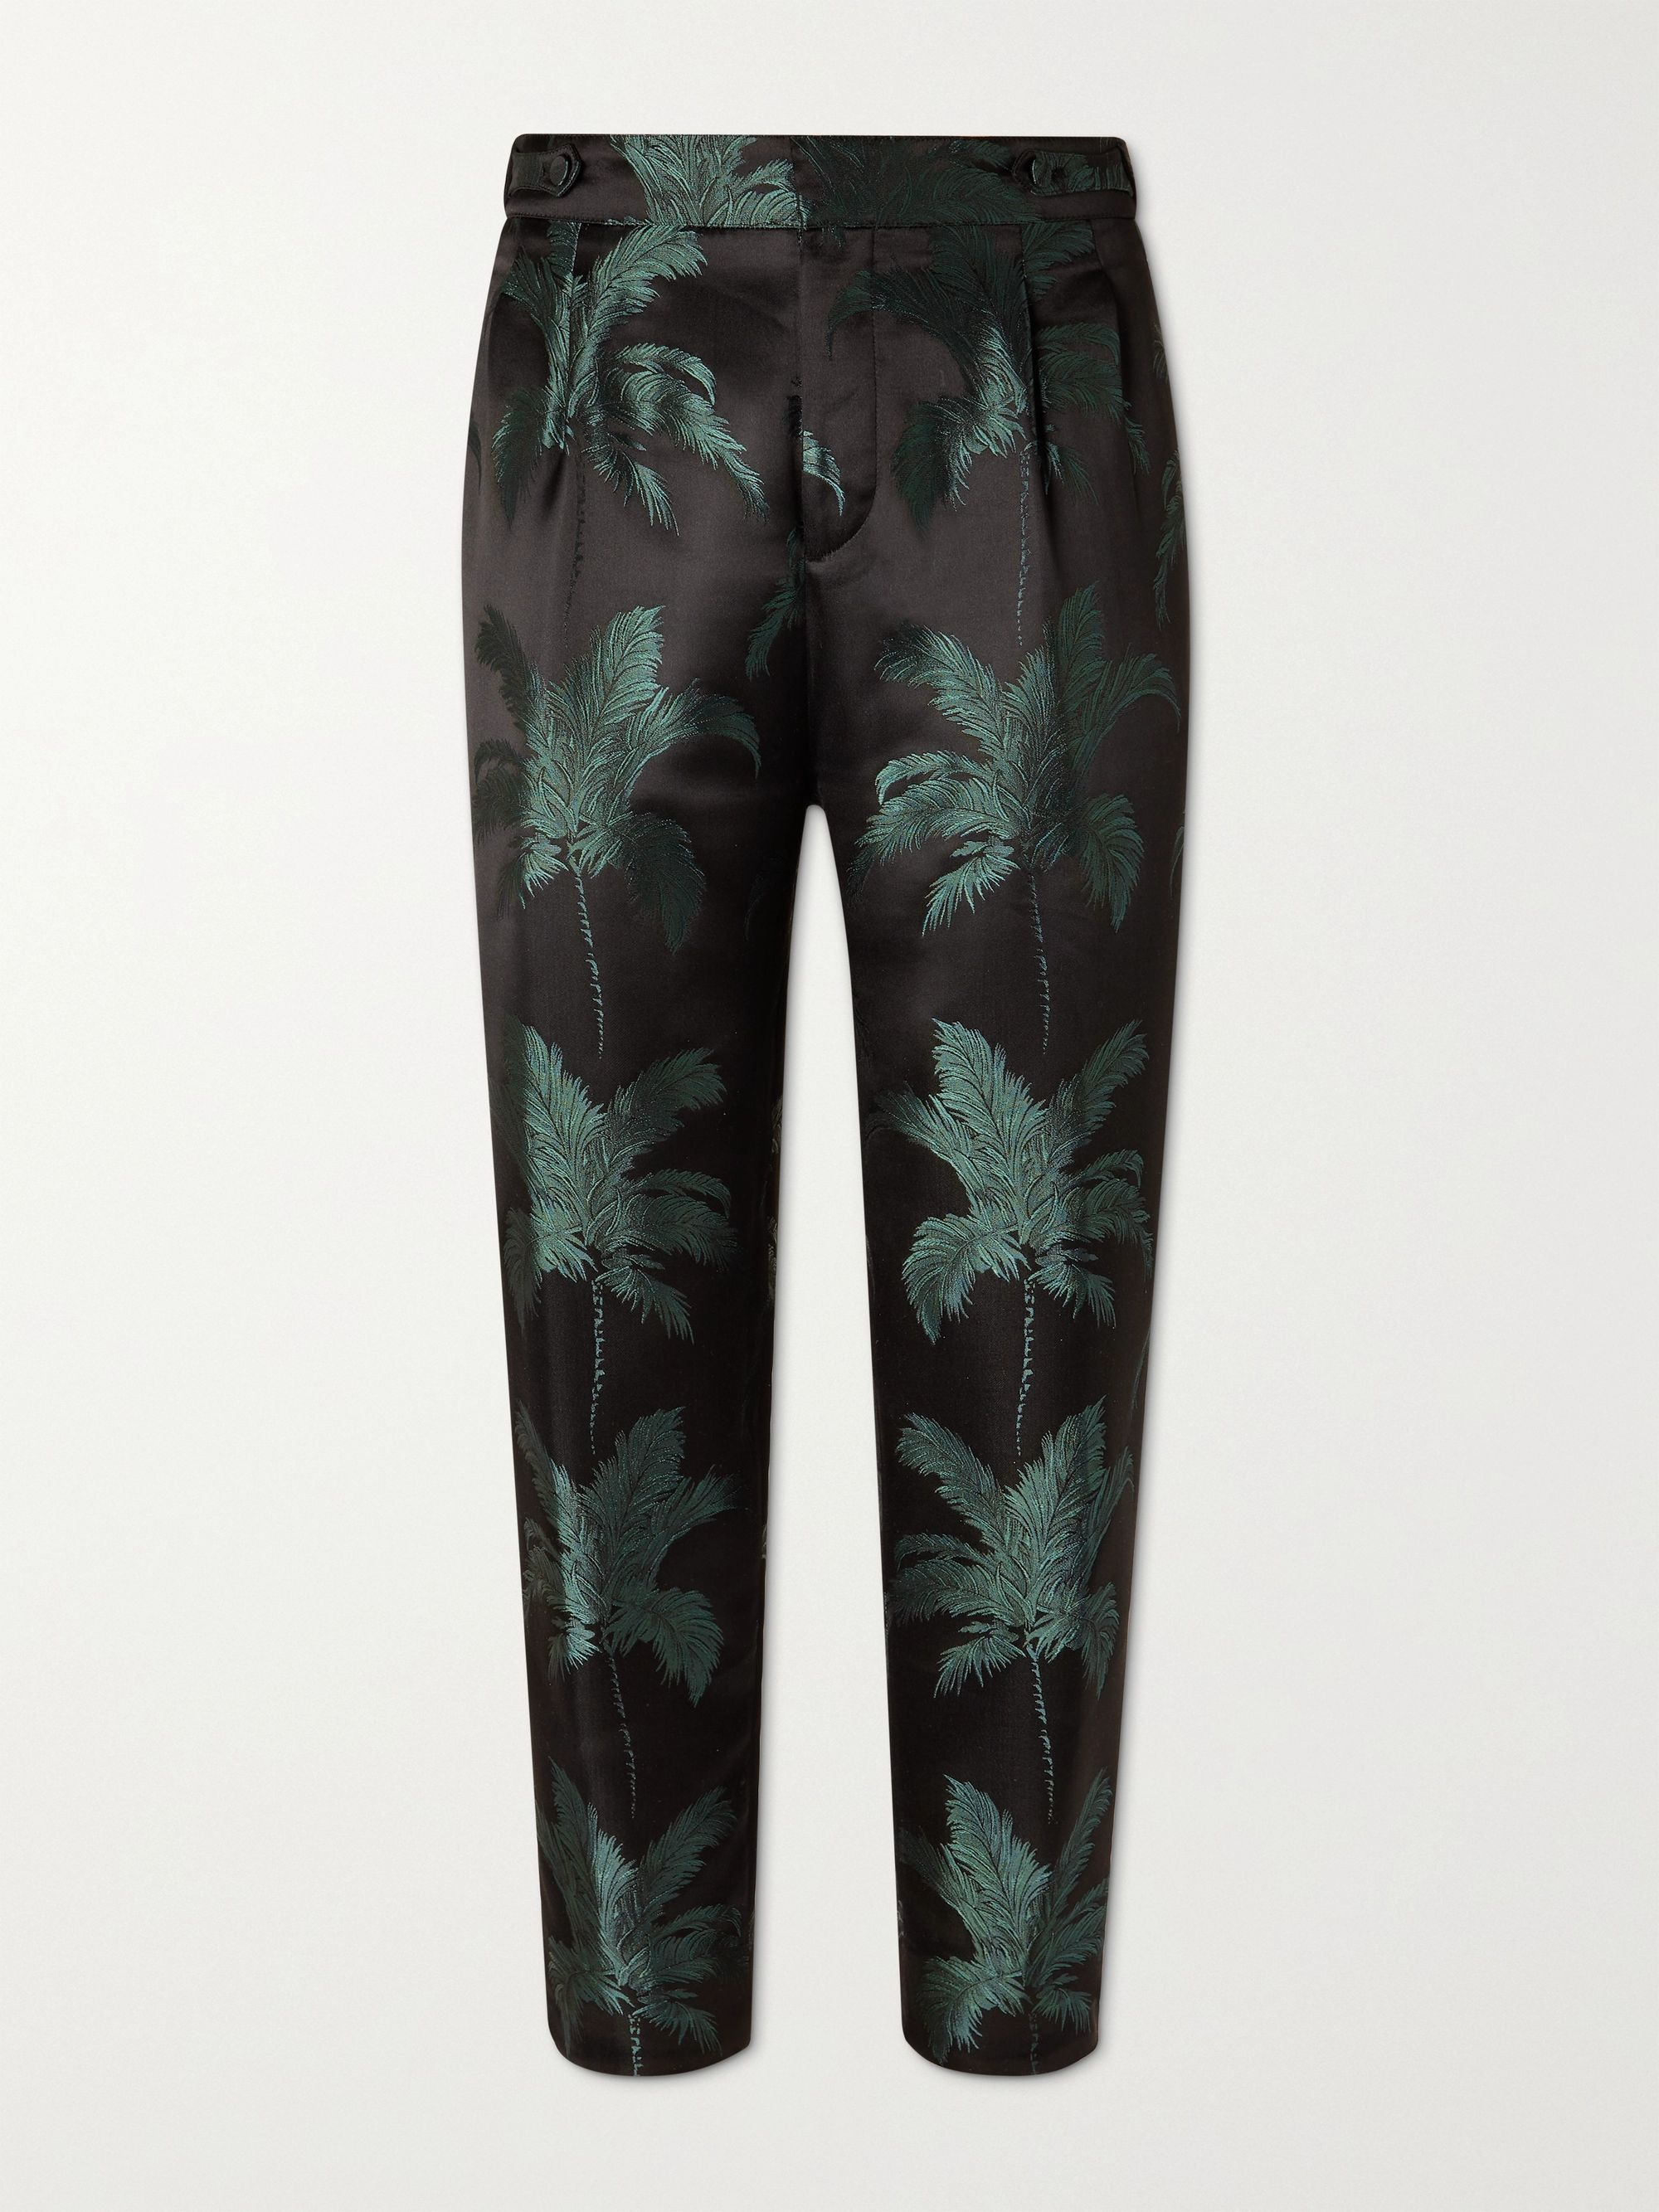 SAINT LAURENT Tapered Cropped Pleated Satin-Jacquard Trousers